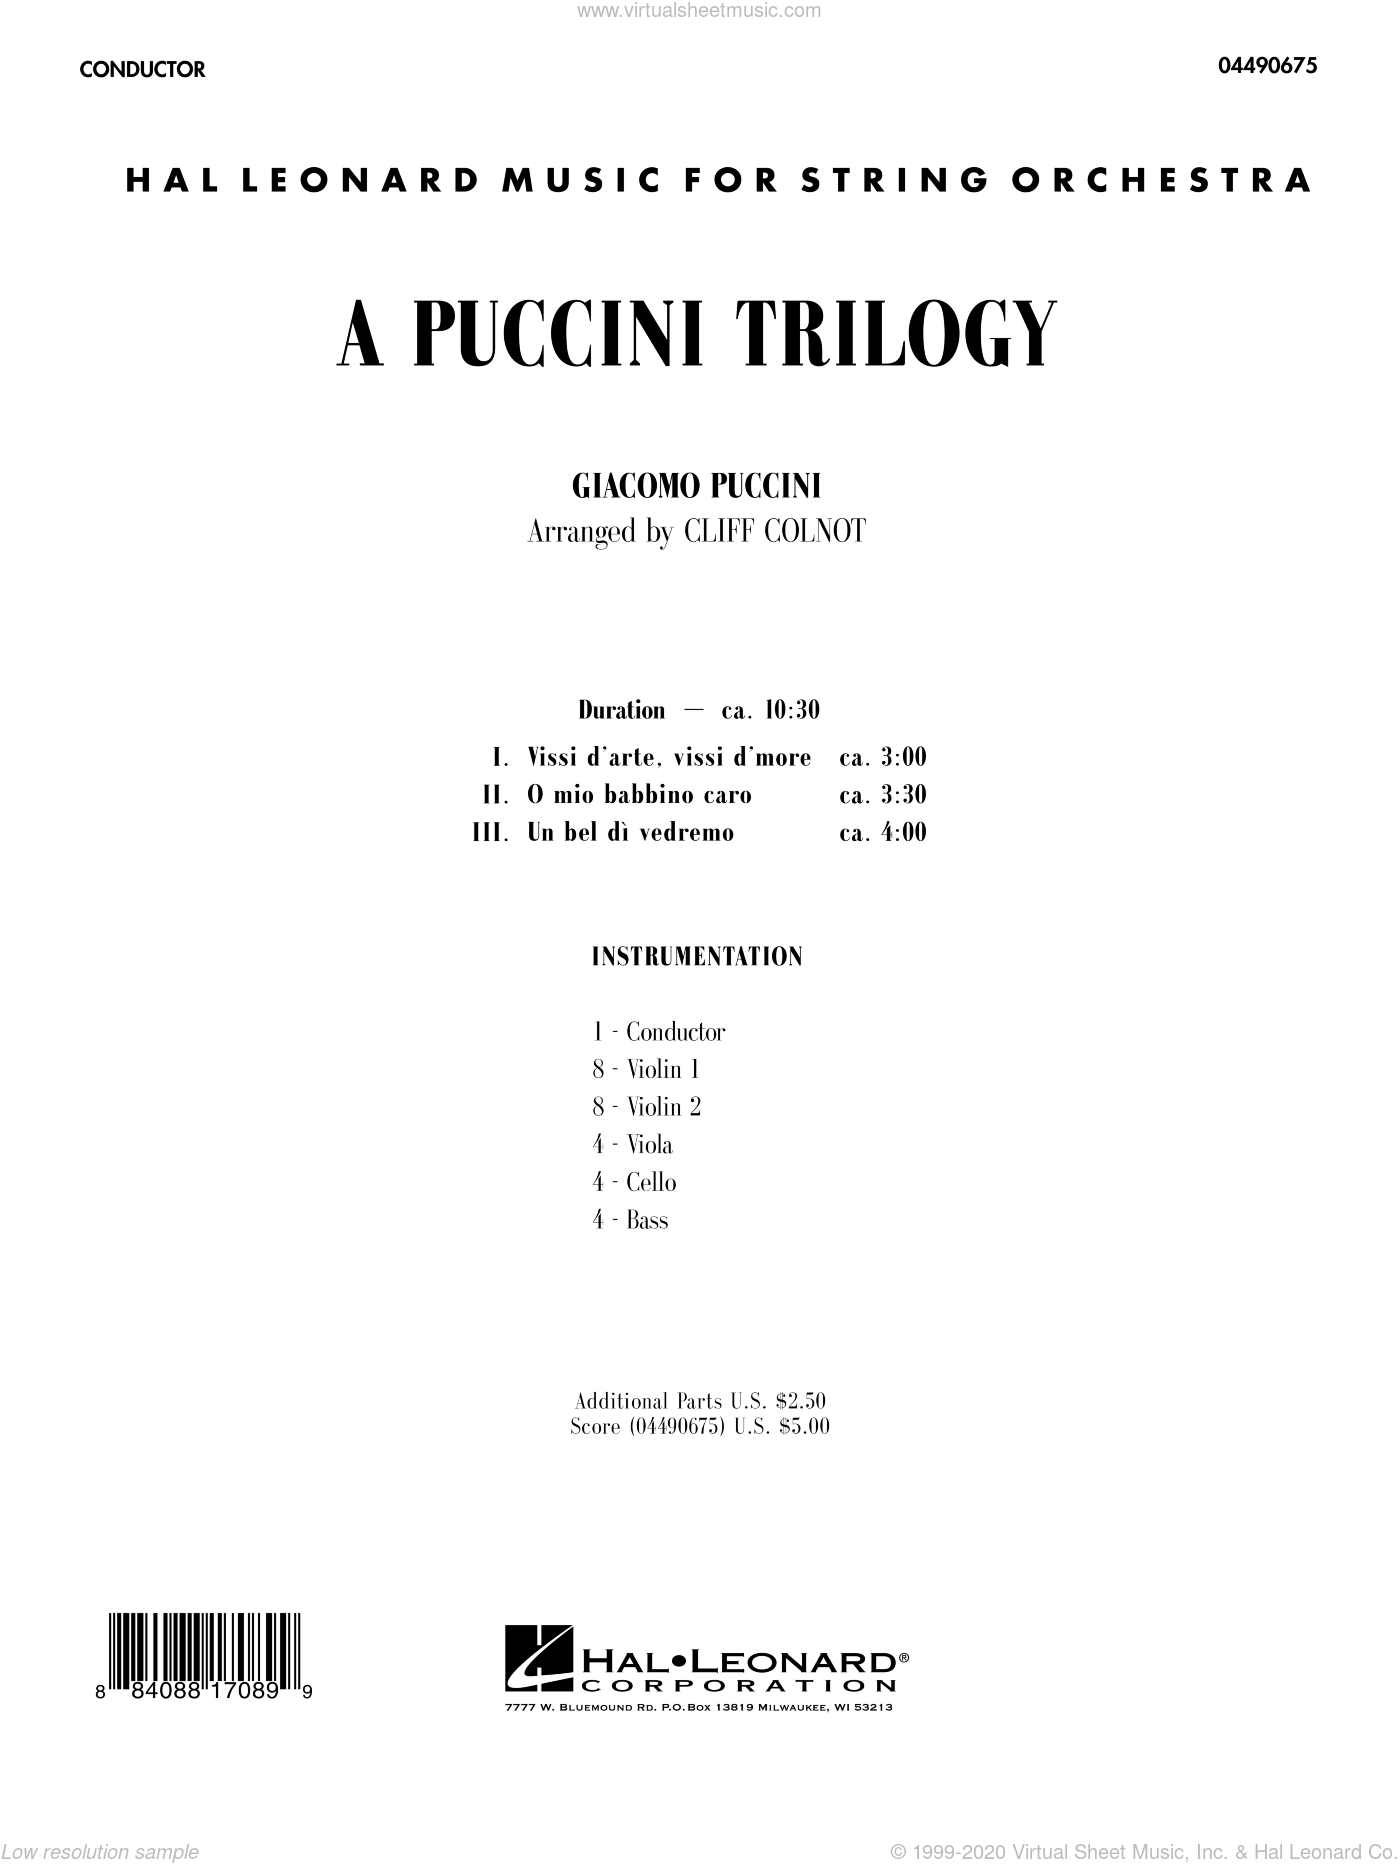 A Puccini Trilogy sheet music for orchestra (full score) by Giacomo Puccini